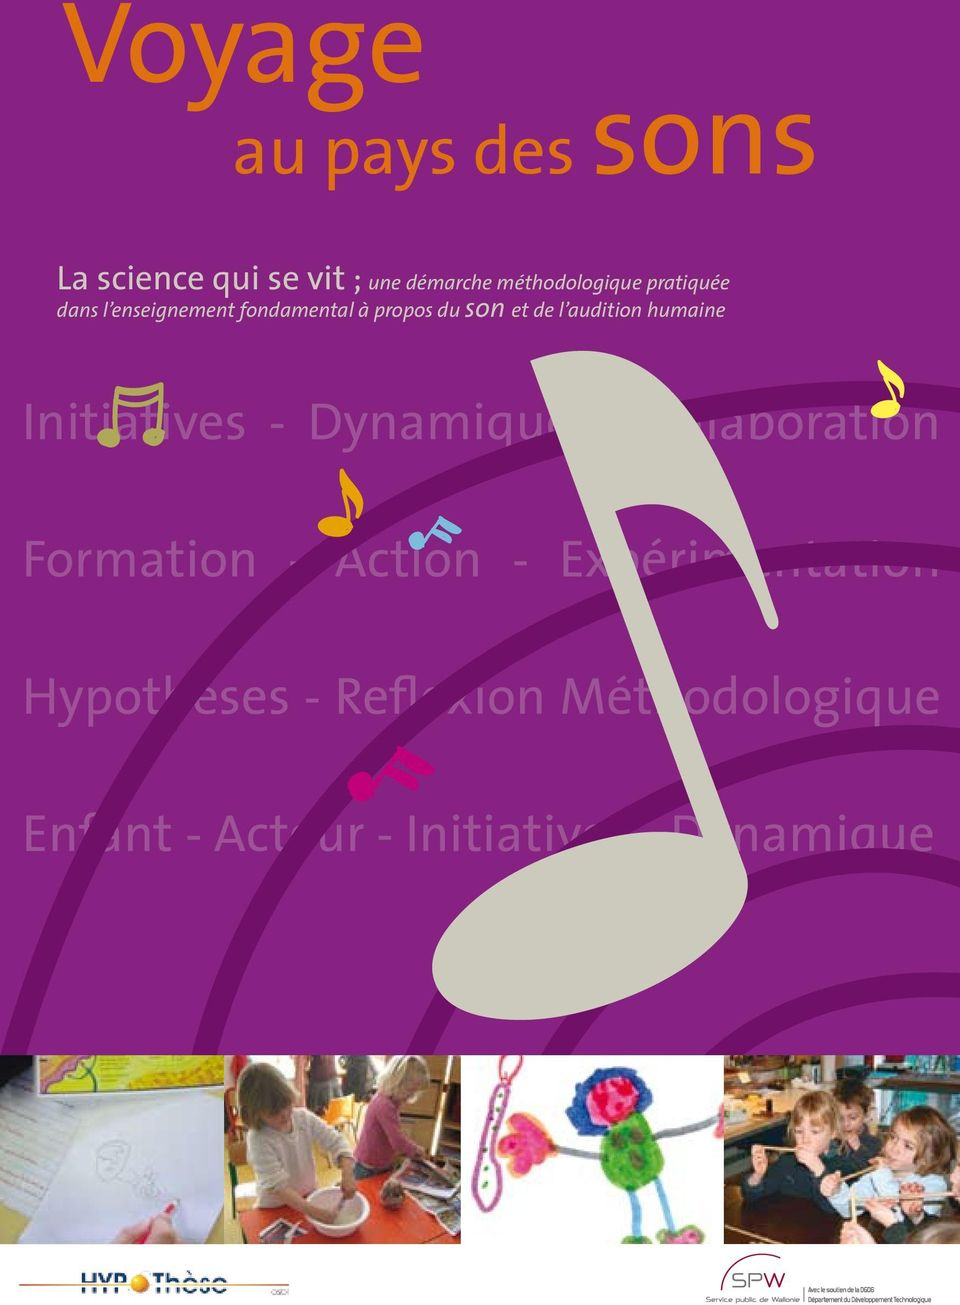 humaine Initiatives - Dynamique - Collaboration Formation - Action -